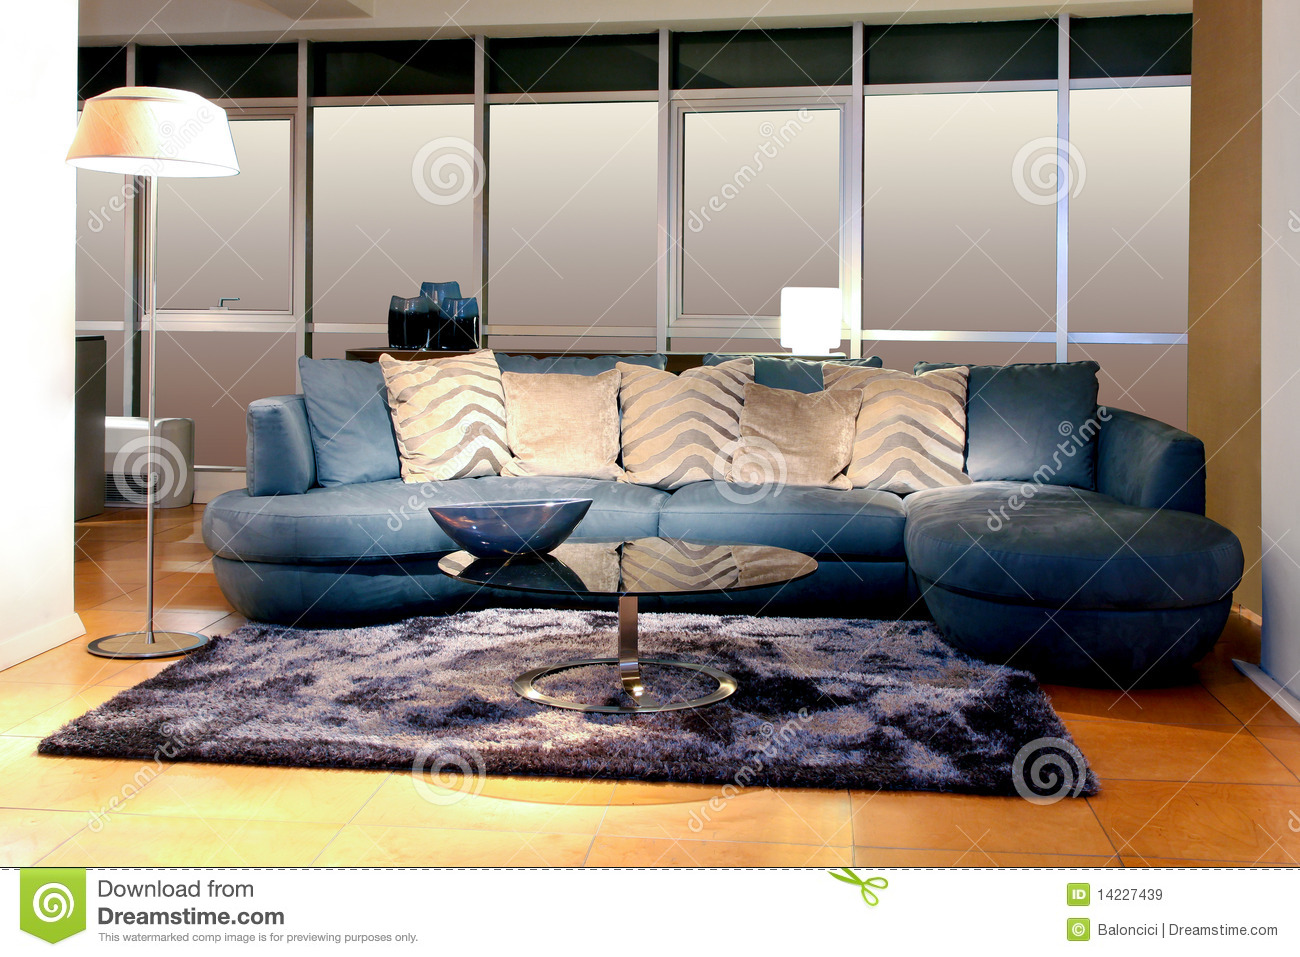 Blauwe Design Bank.Blue Sofa Stock Image Image Of Couch Cushions Furniture 14227439